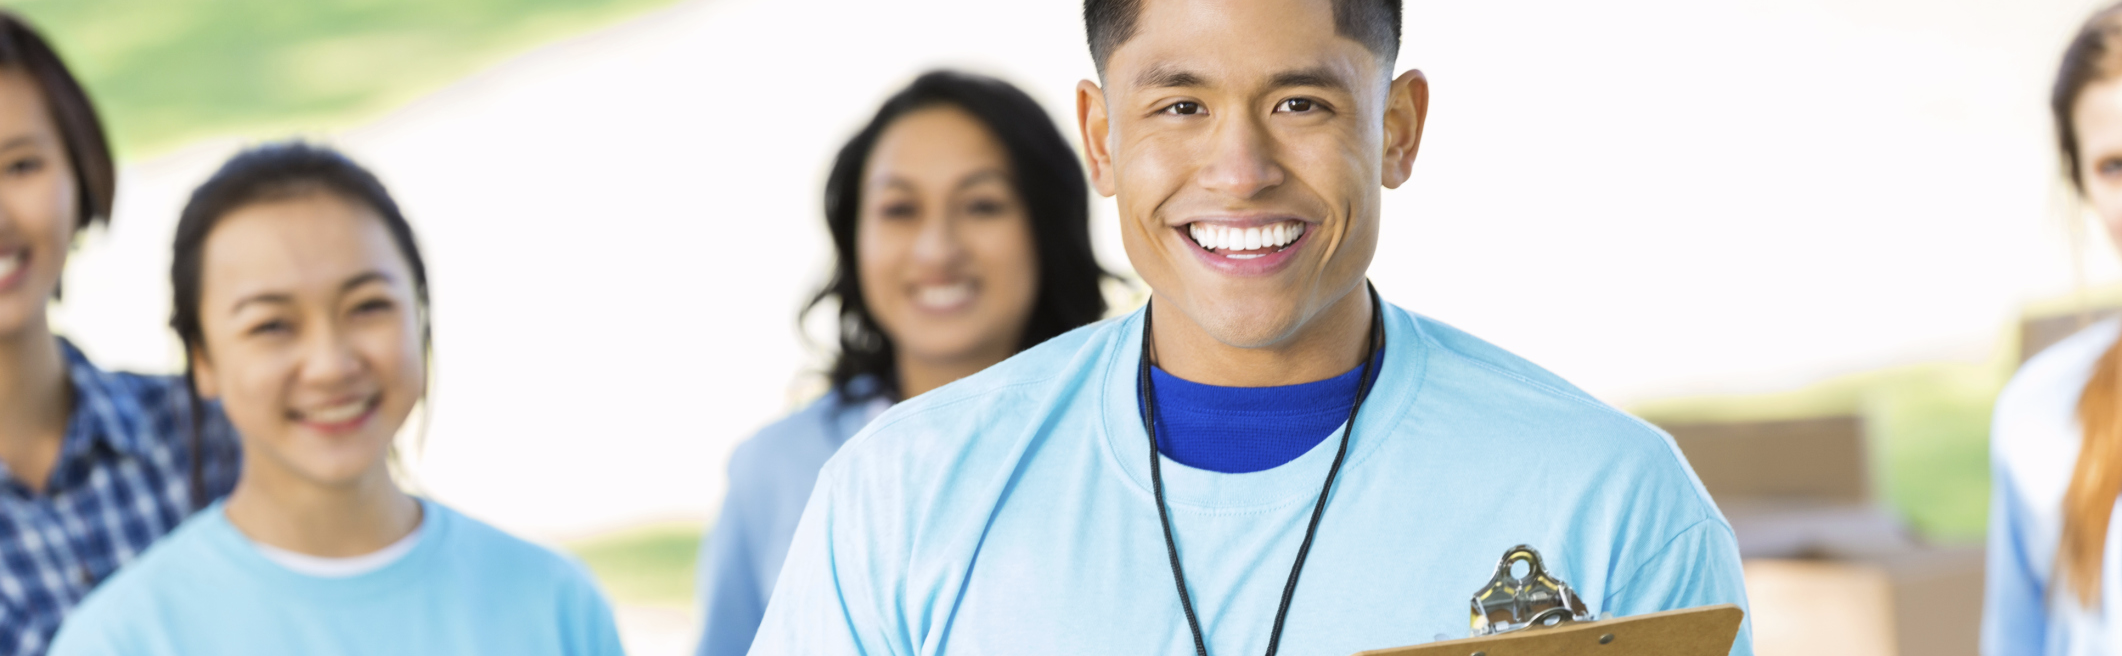 Kansas City School Of Phlebotomy Recruit Clinical Student Volunteers